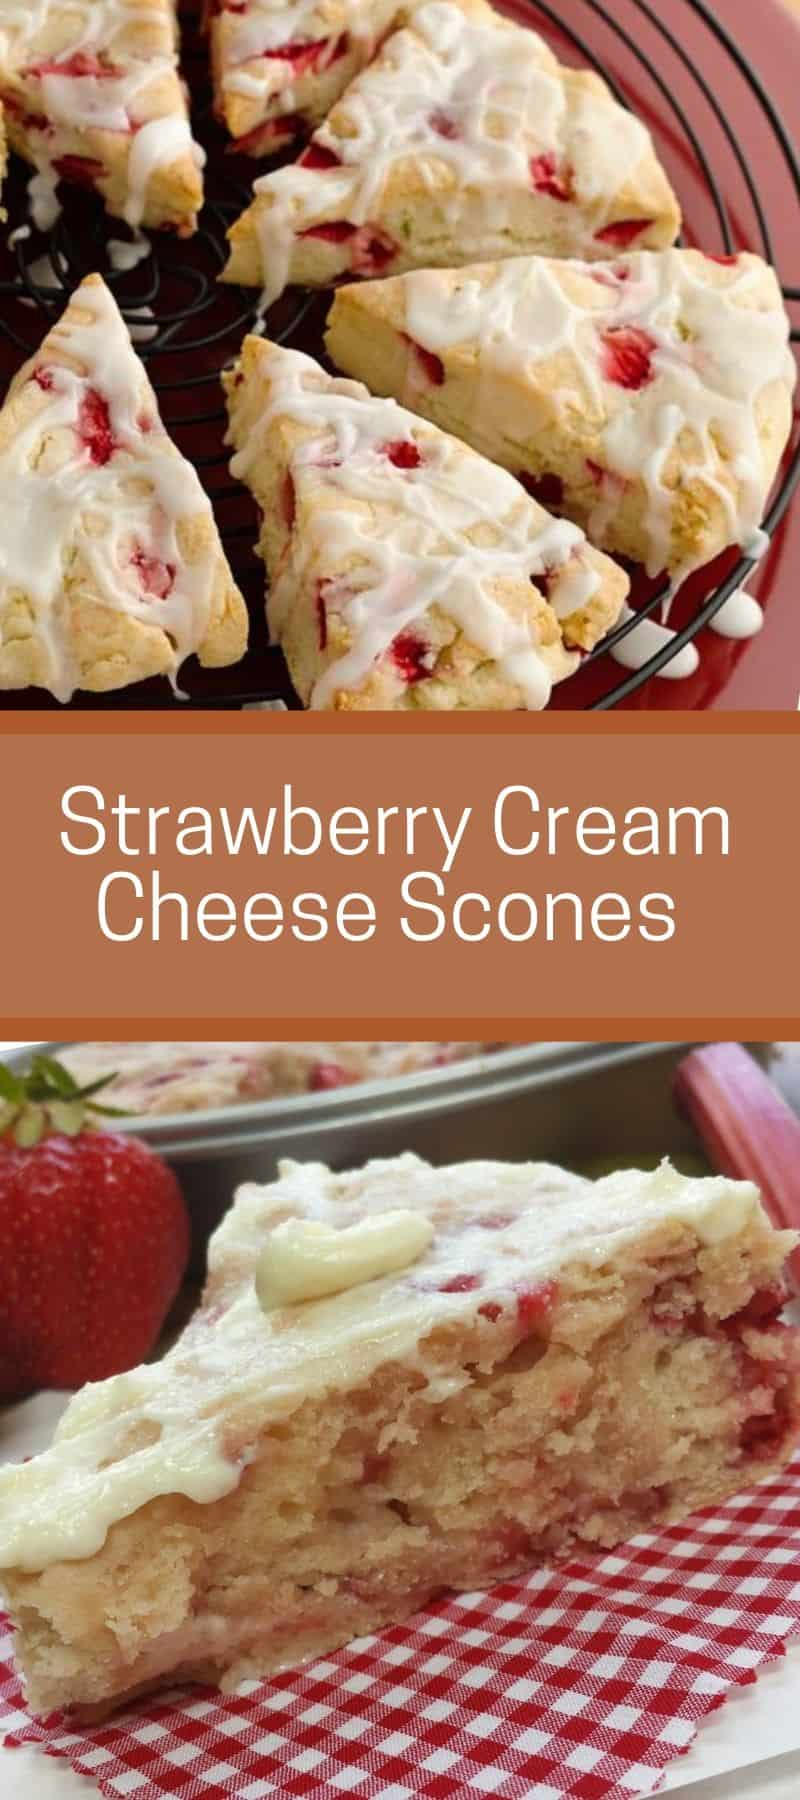 Strawberry Cream Cheese Scones Recipe 3